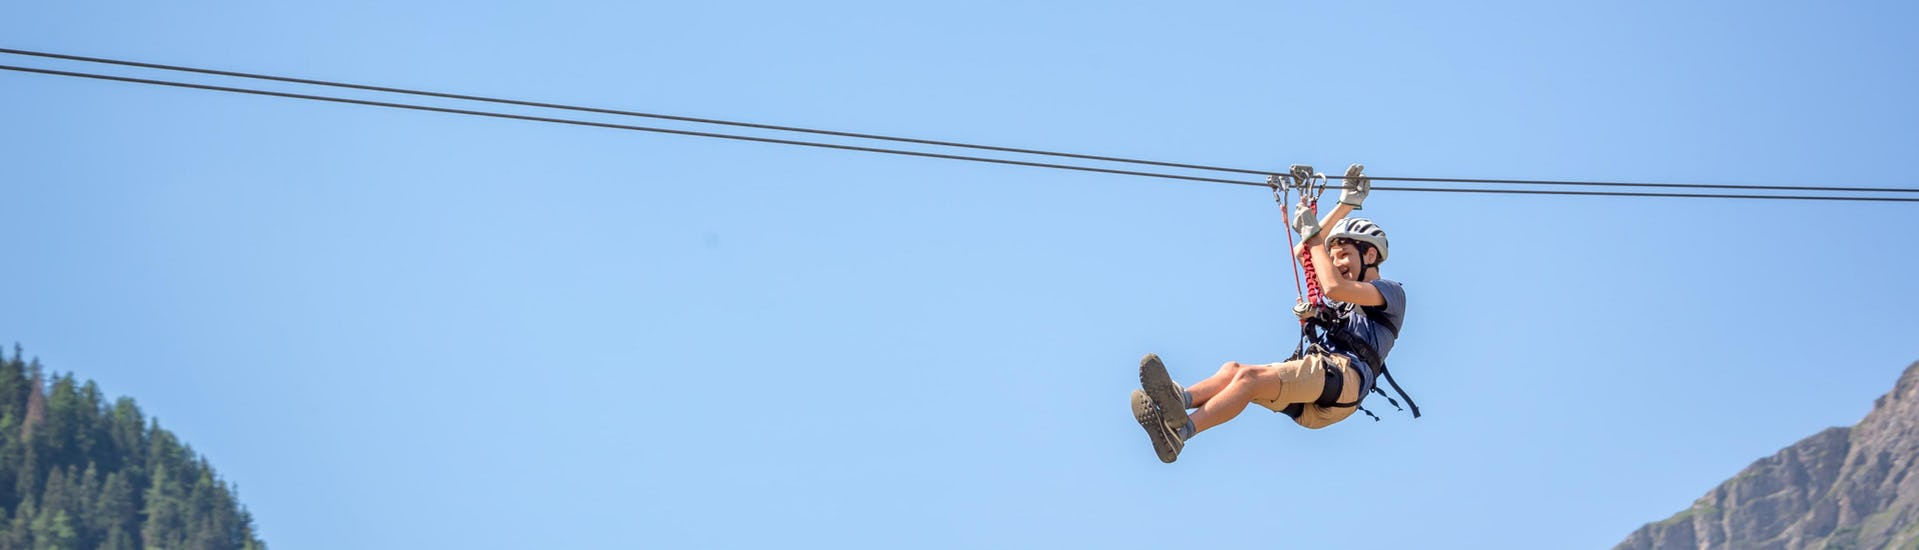 A young man using a zipline to cross a deep gorge in the holiday destination of Queenstown.